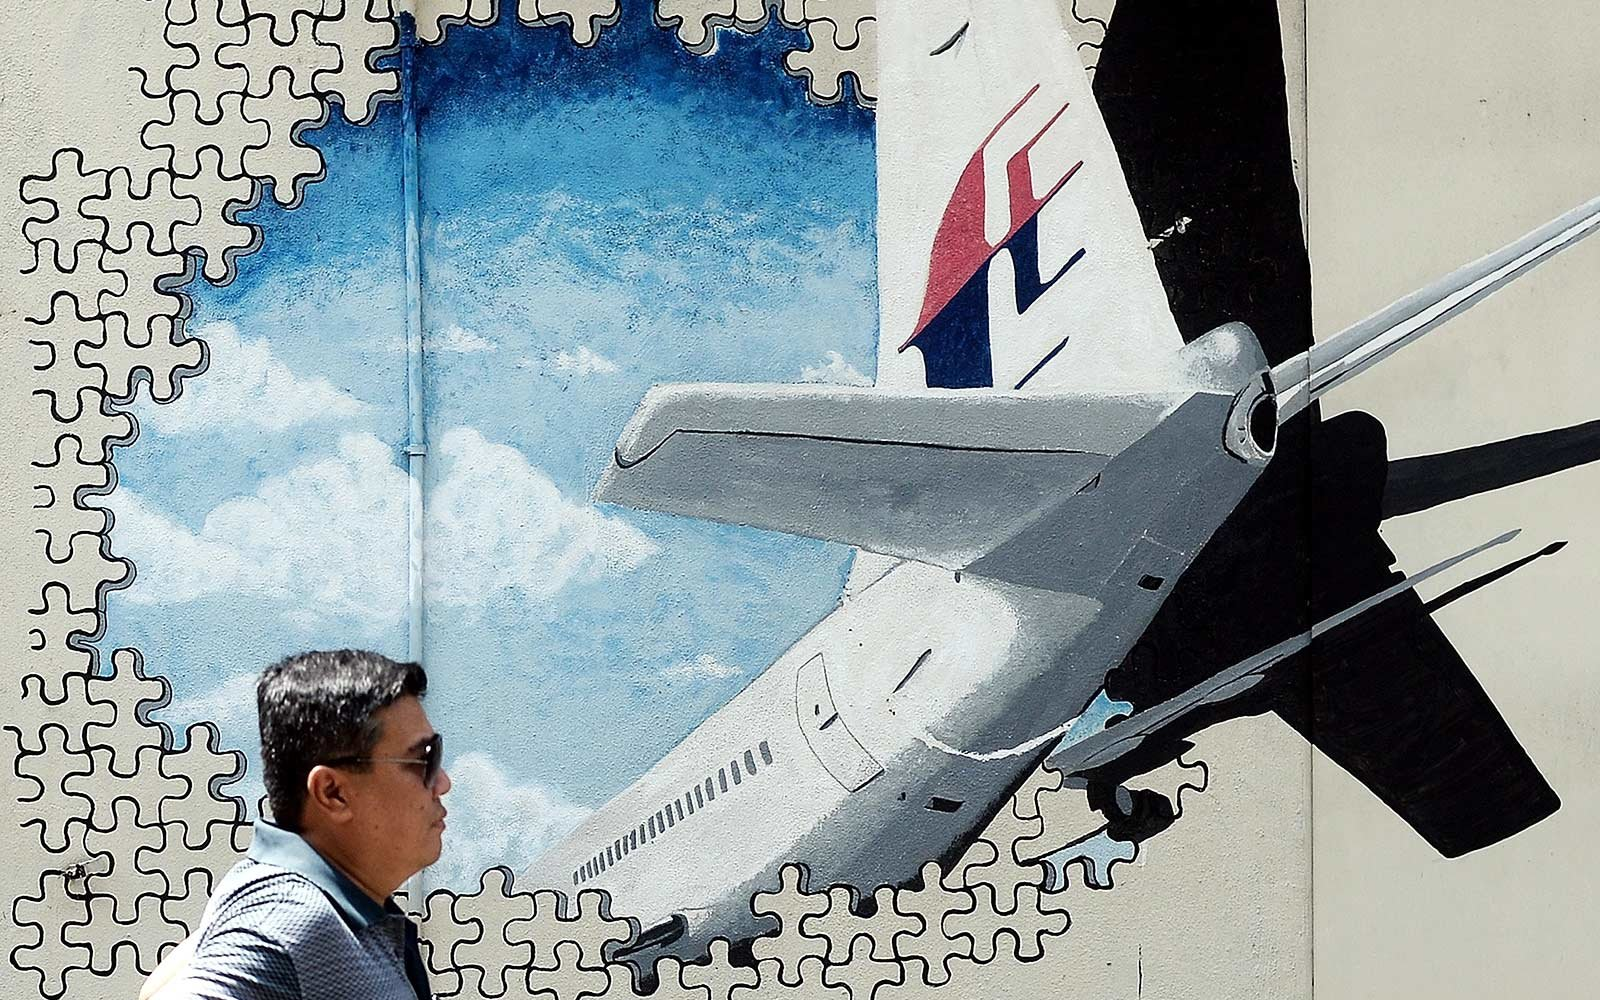 MH370 will remain unsolved